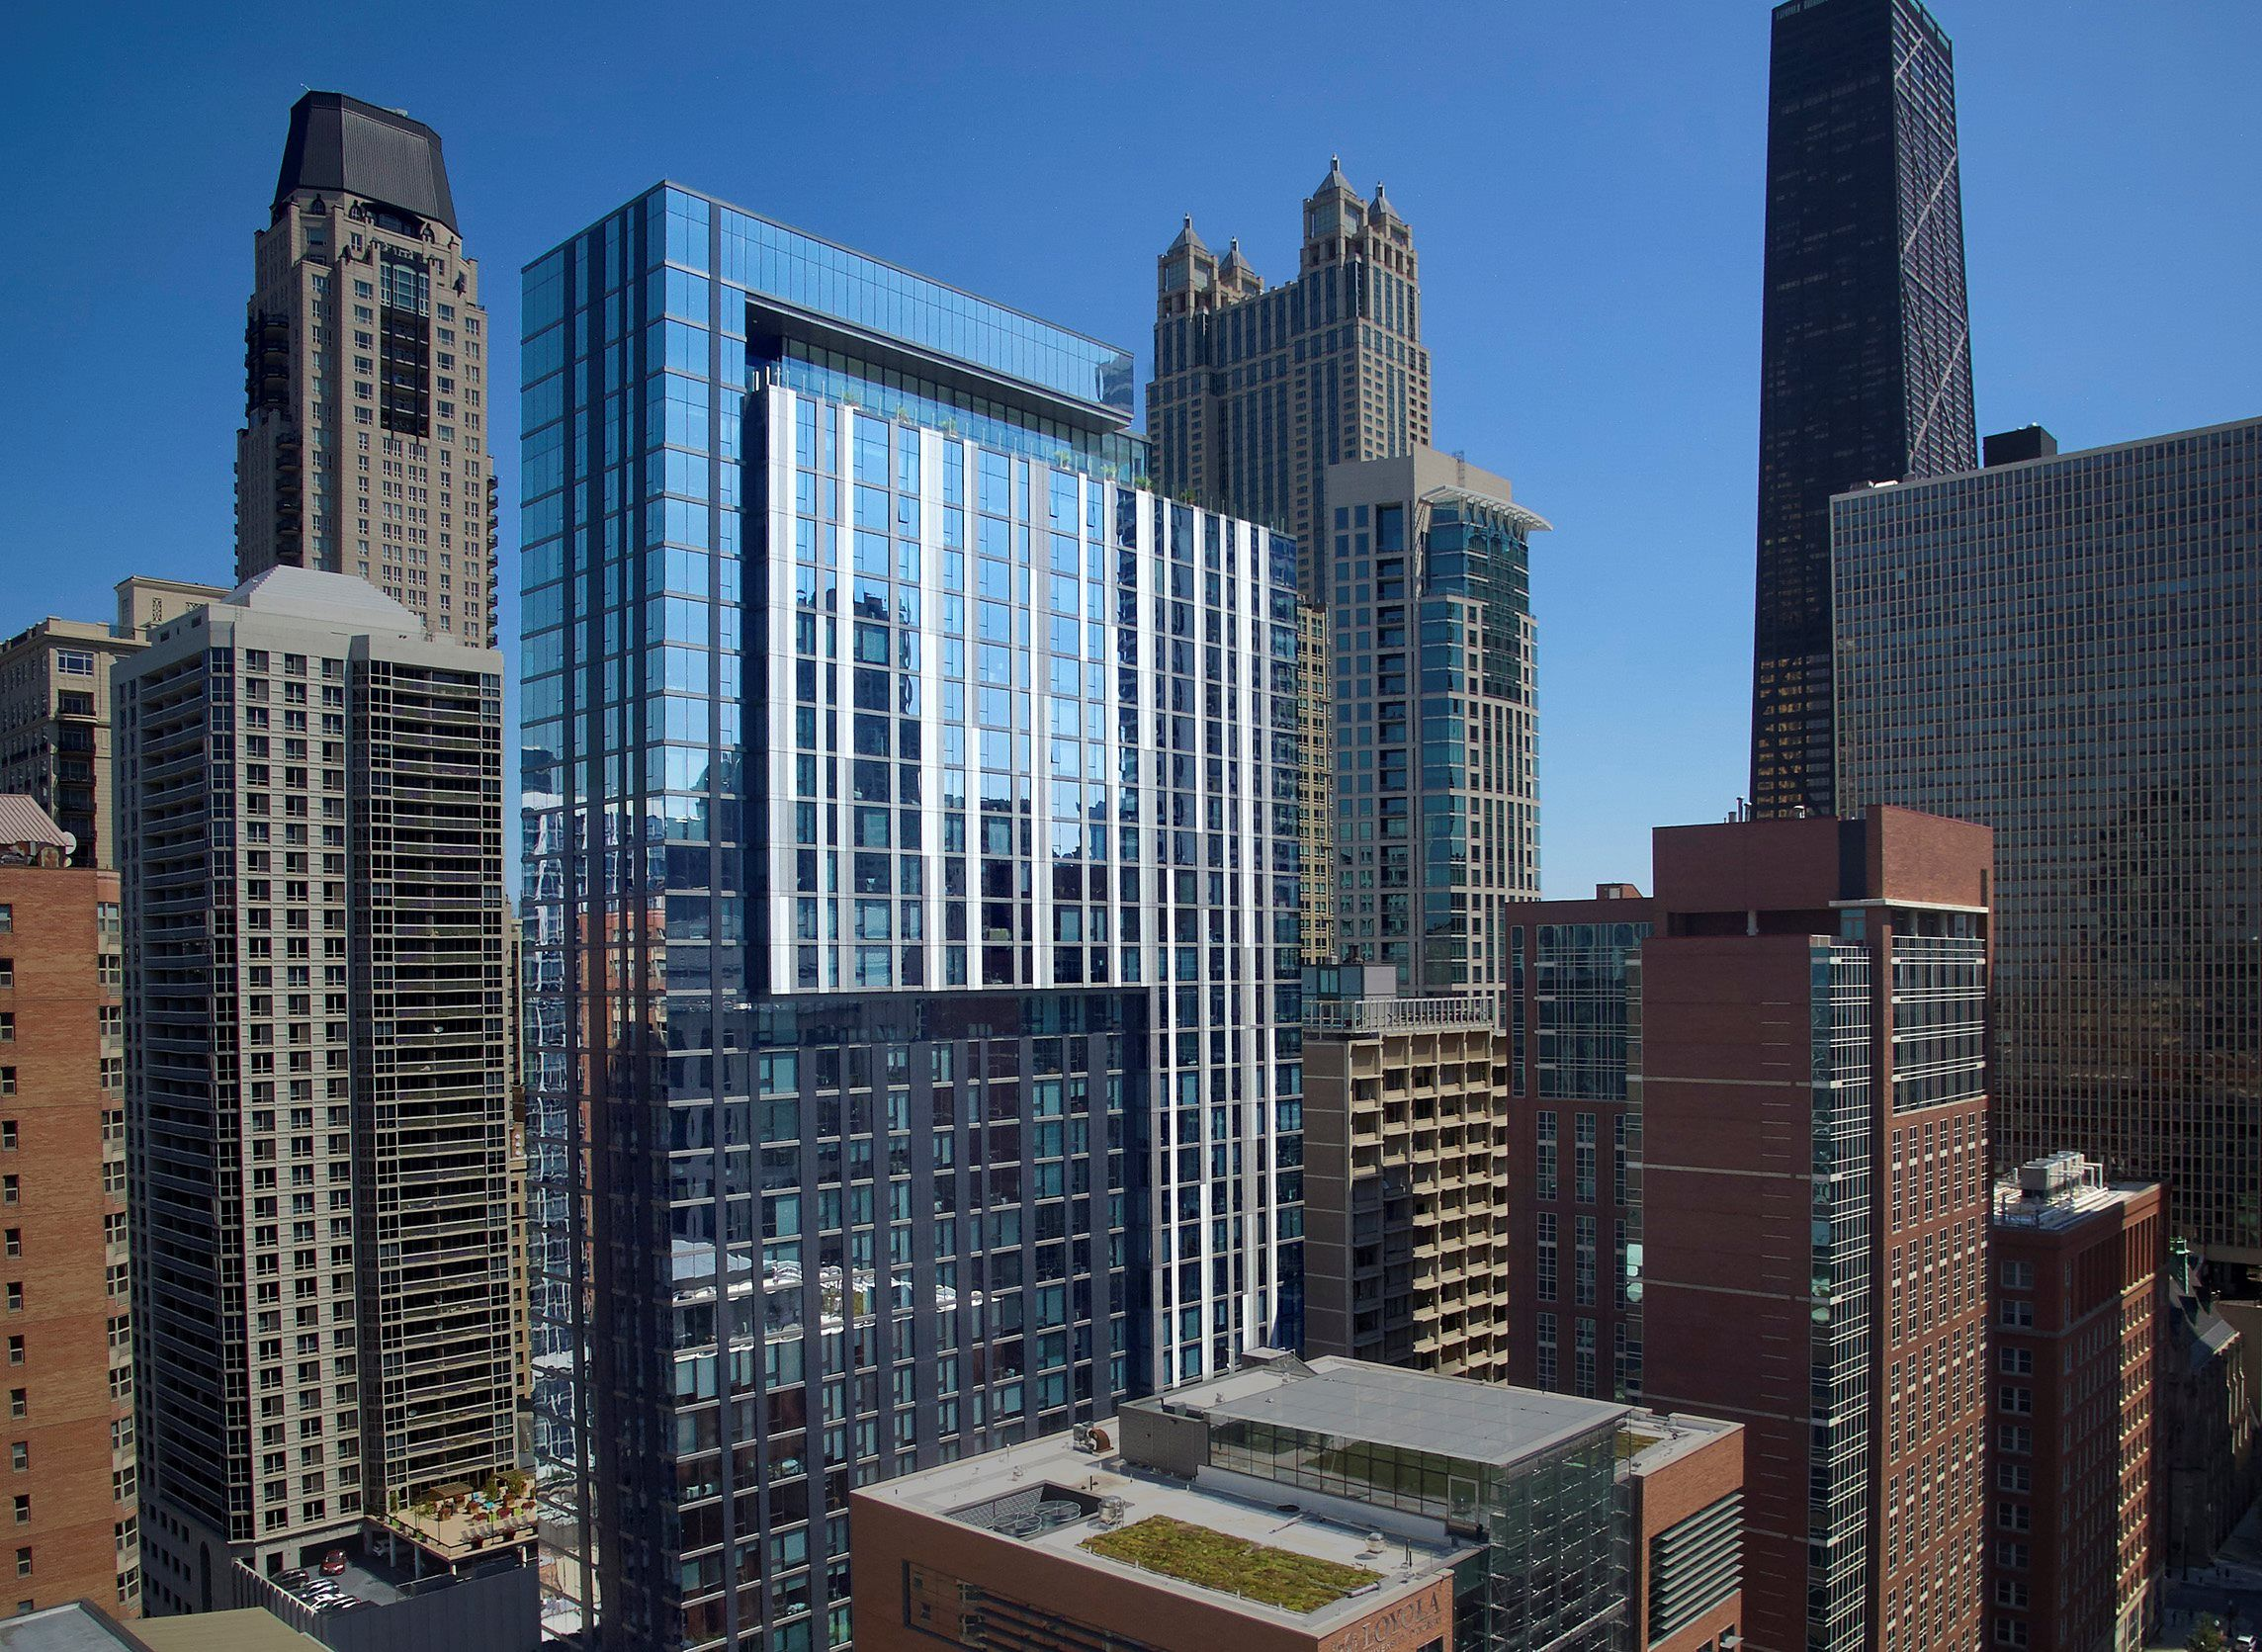 Apartments in Gold Coast, Chicago State & Chestnut